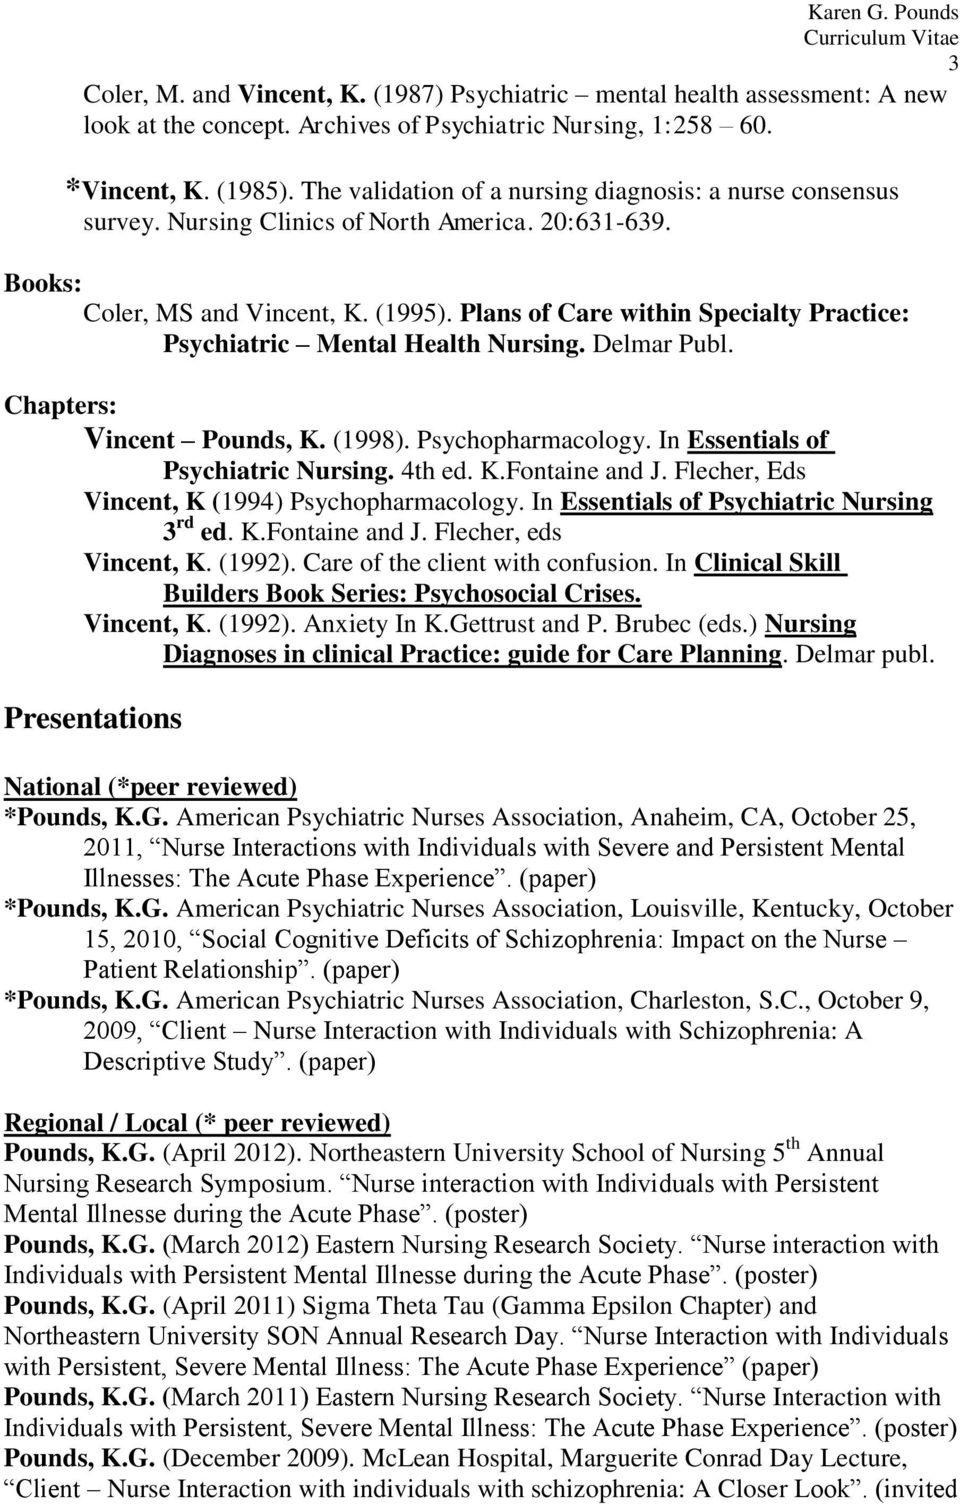 Plans of Care within Specialty Practice: Psychiatric Mental Health Nursing. Delmar Publ. Chapters: Vincent Pounds, K. (1998). Psychopharmacology. In Essentials of Psychiatric Nursing. 4th ed. K.Fontaine and J.